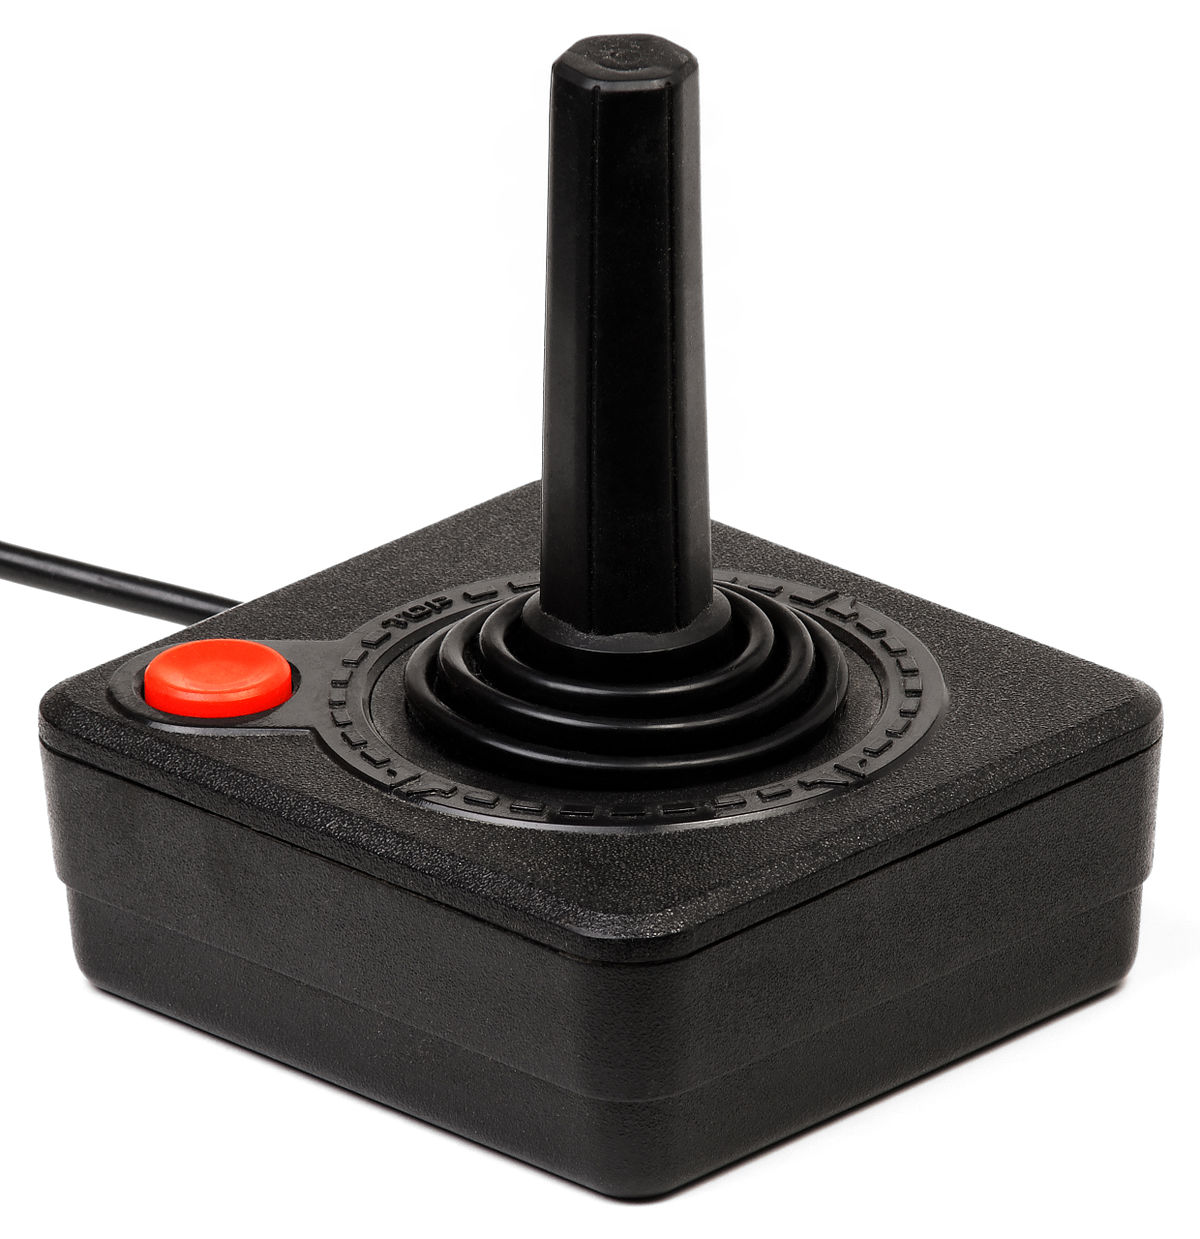 1200px Atari 2600 Joystick atari cx40 joystick wikipedia  at n-0.co